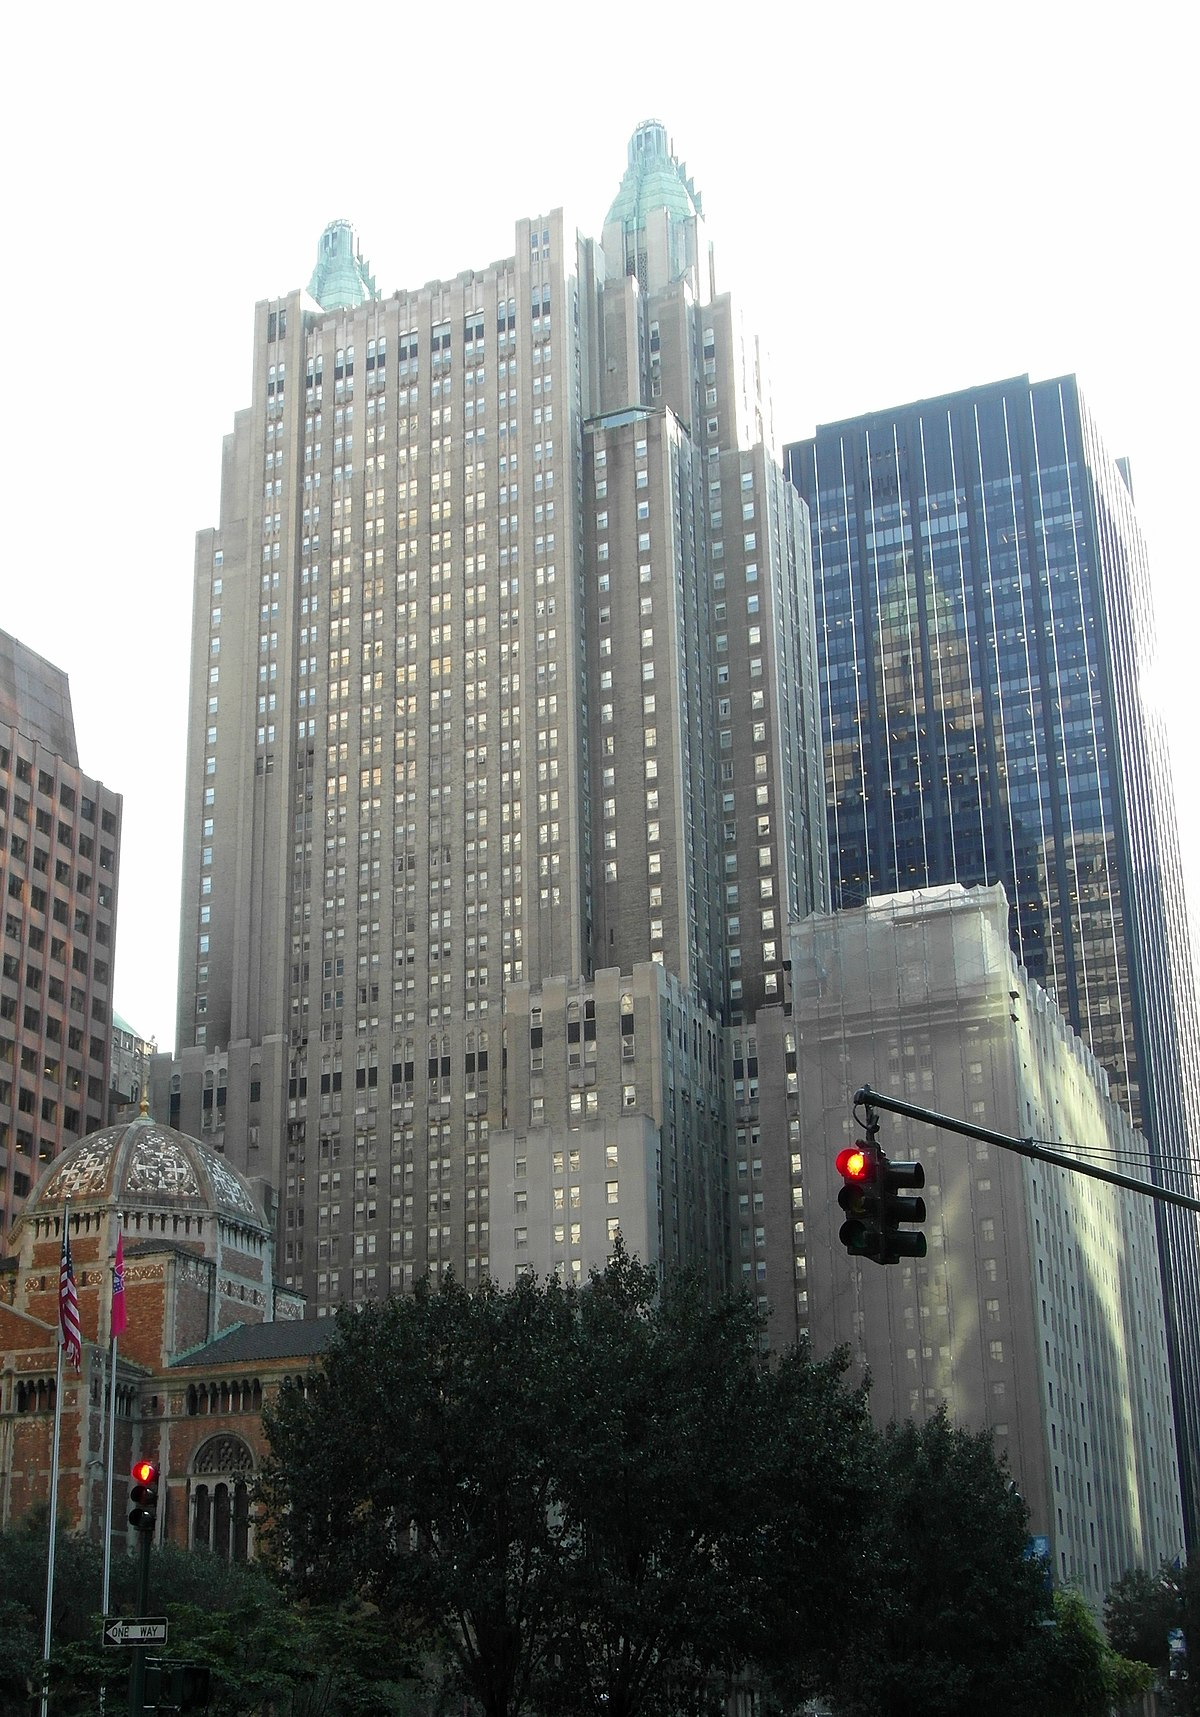 waldorf astoria new york - wikipedia